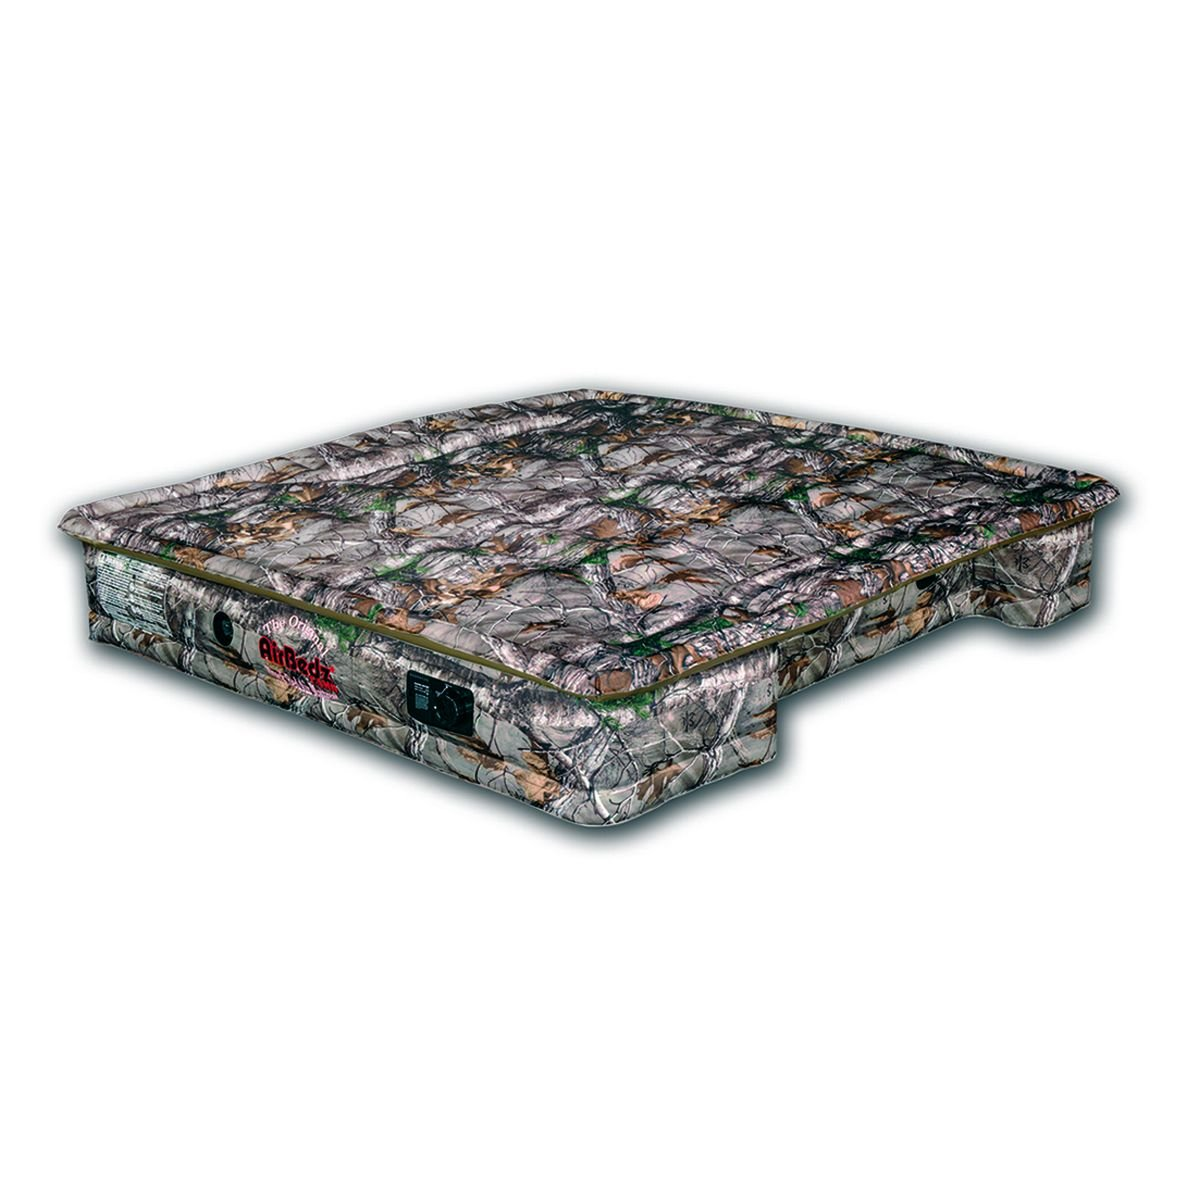 AirBedz Camo 405-Mid PPI 405 Mid Size 5'-5.5' Short Bed with Built-in Rechargeable Battery Air Pump with Tailgate Mattress